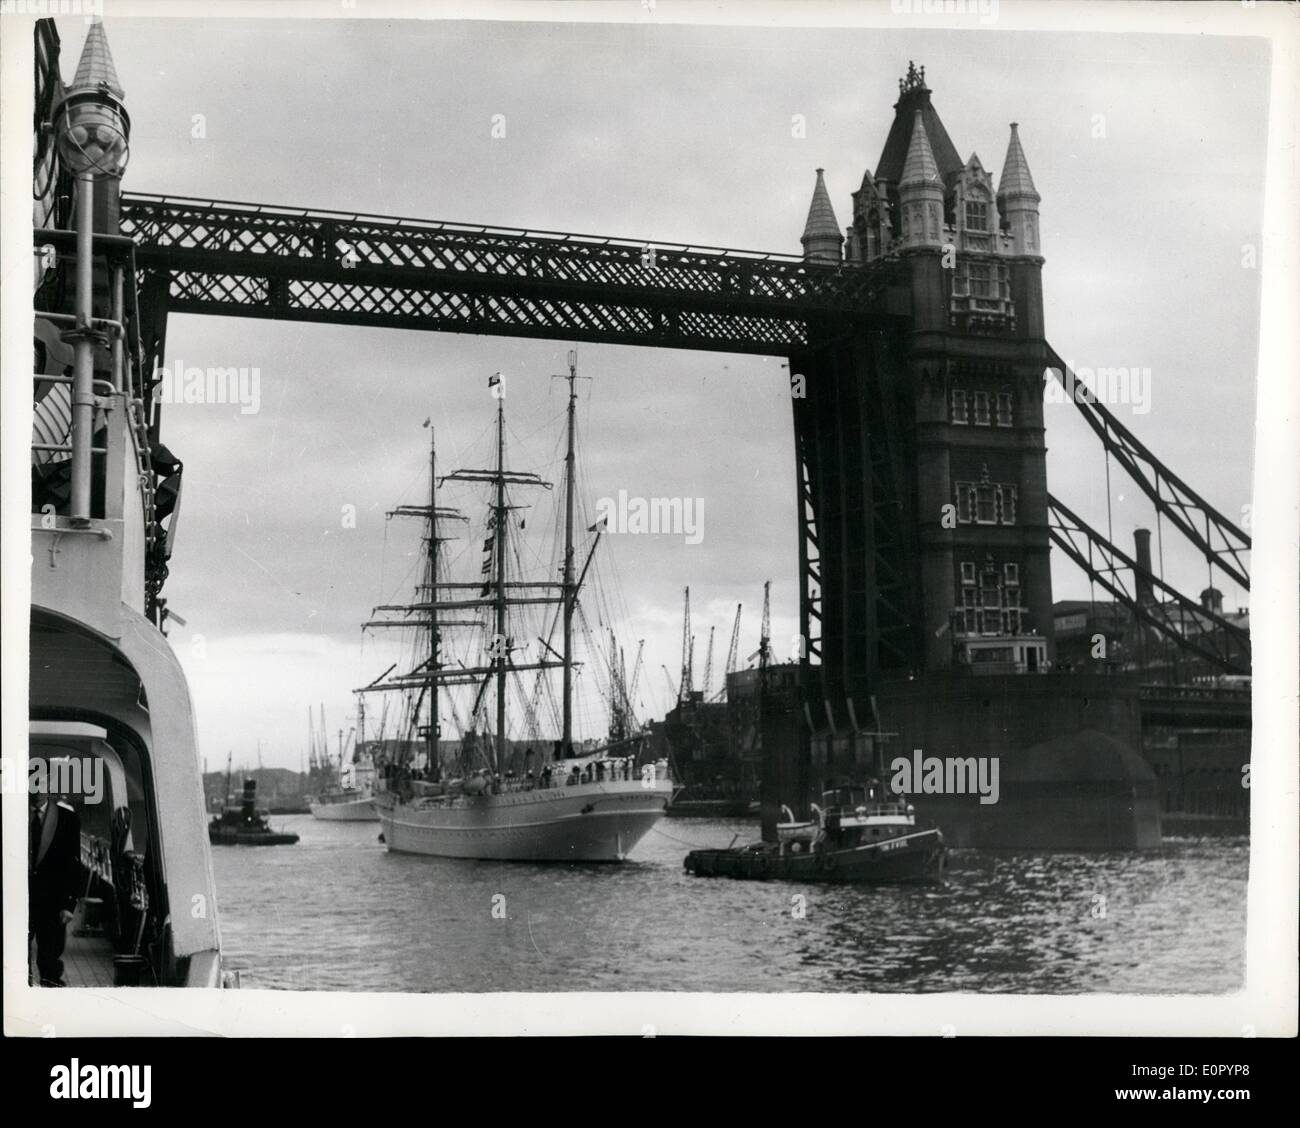 Jul. 07, 1957 - American Training Barque ''Eagle'' Arrives In The Thames: The American Coastguard Practice Squadron flagship Eagle with 350 Cadets aboard - arrived in the Thames ;last evening. They are on their annual nine weeks cruise - and the vessel is moored near Tower Bridge. The sailing ship is the Old Nazi Cadet ship ''Horst Wessei'' taken over as reparations. The 51 ft. mast of the ship had to be lowered by 14 ft. before she could pass under the top soan of Tower Bridge. Photo Shows The ''Eagle'' as she comes under the bridge - last evening. - Stock Image